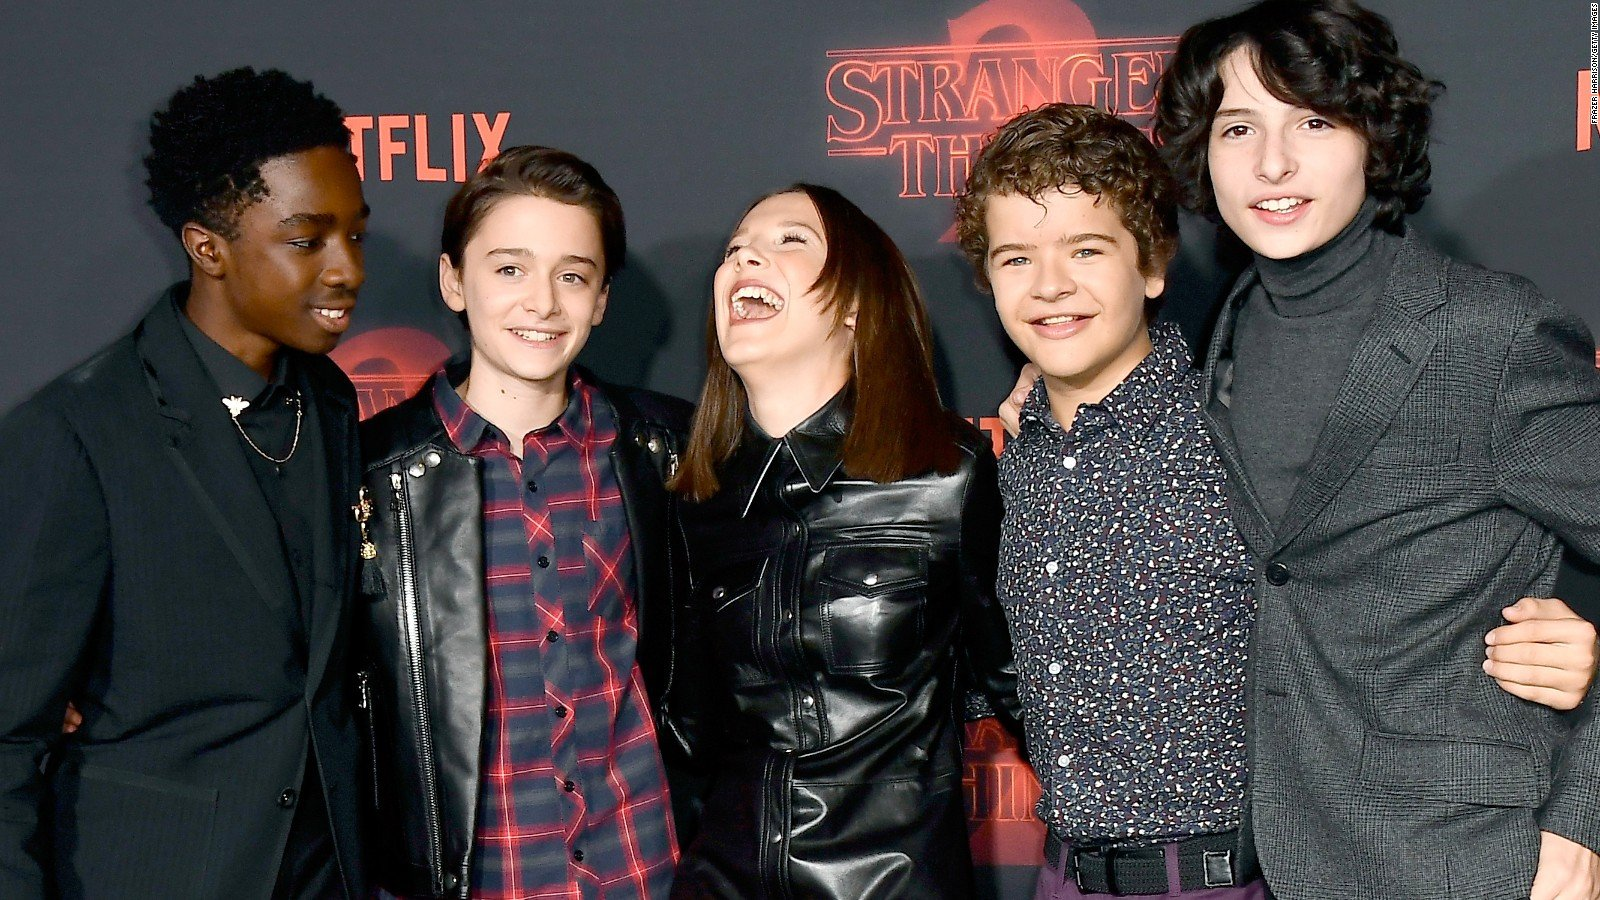 Stranger Things Season 4 New Cast and Characters